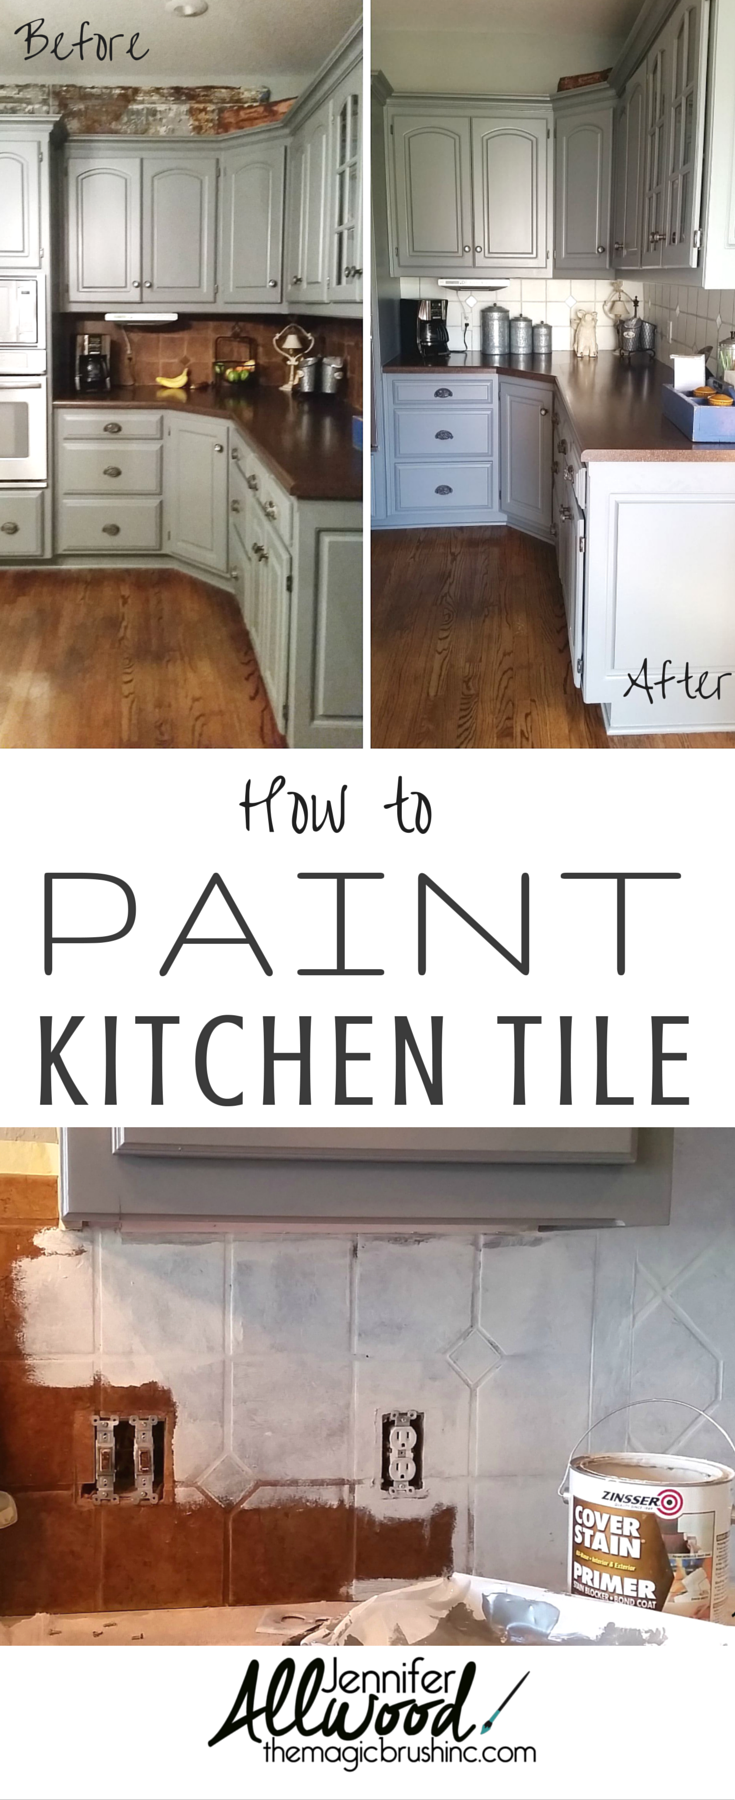 How to paint kitchen tile and grout an easy kitchen update diy how to paint kitchen tile and grout an easy kitchen update dailygadgetfo Images